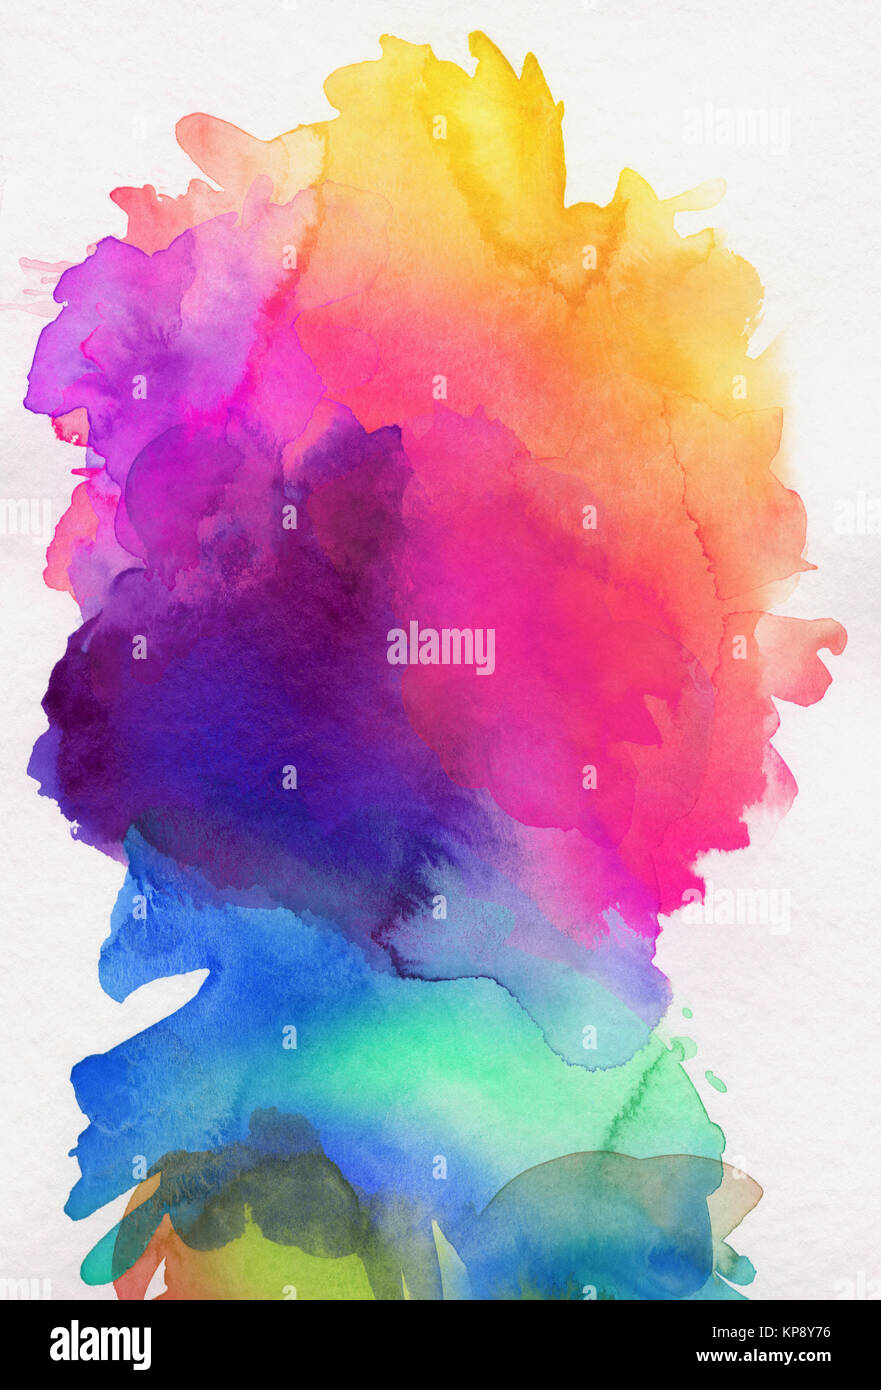 watercolor rainbow abstract running - Stock Image